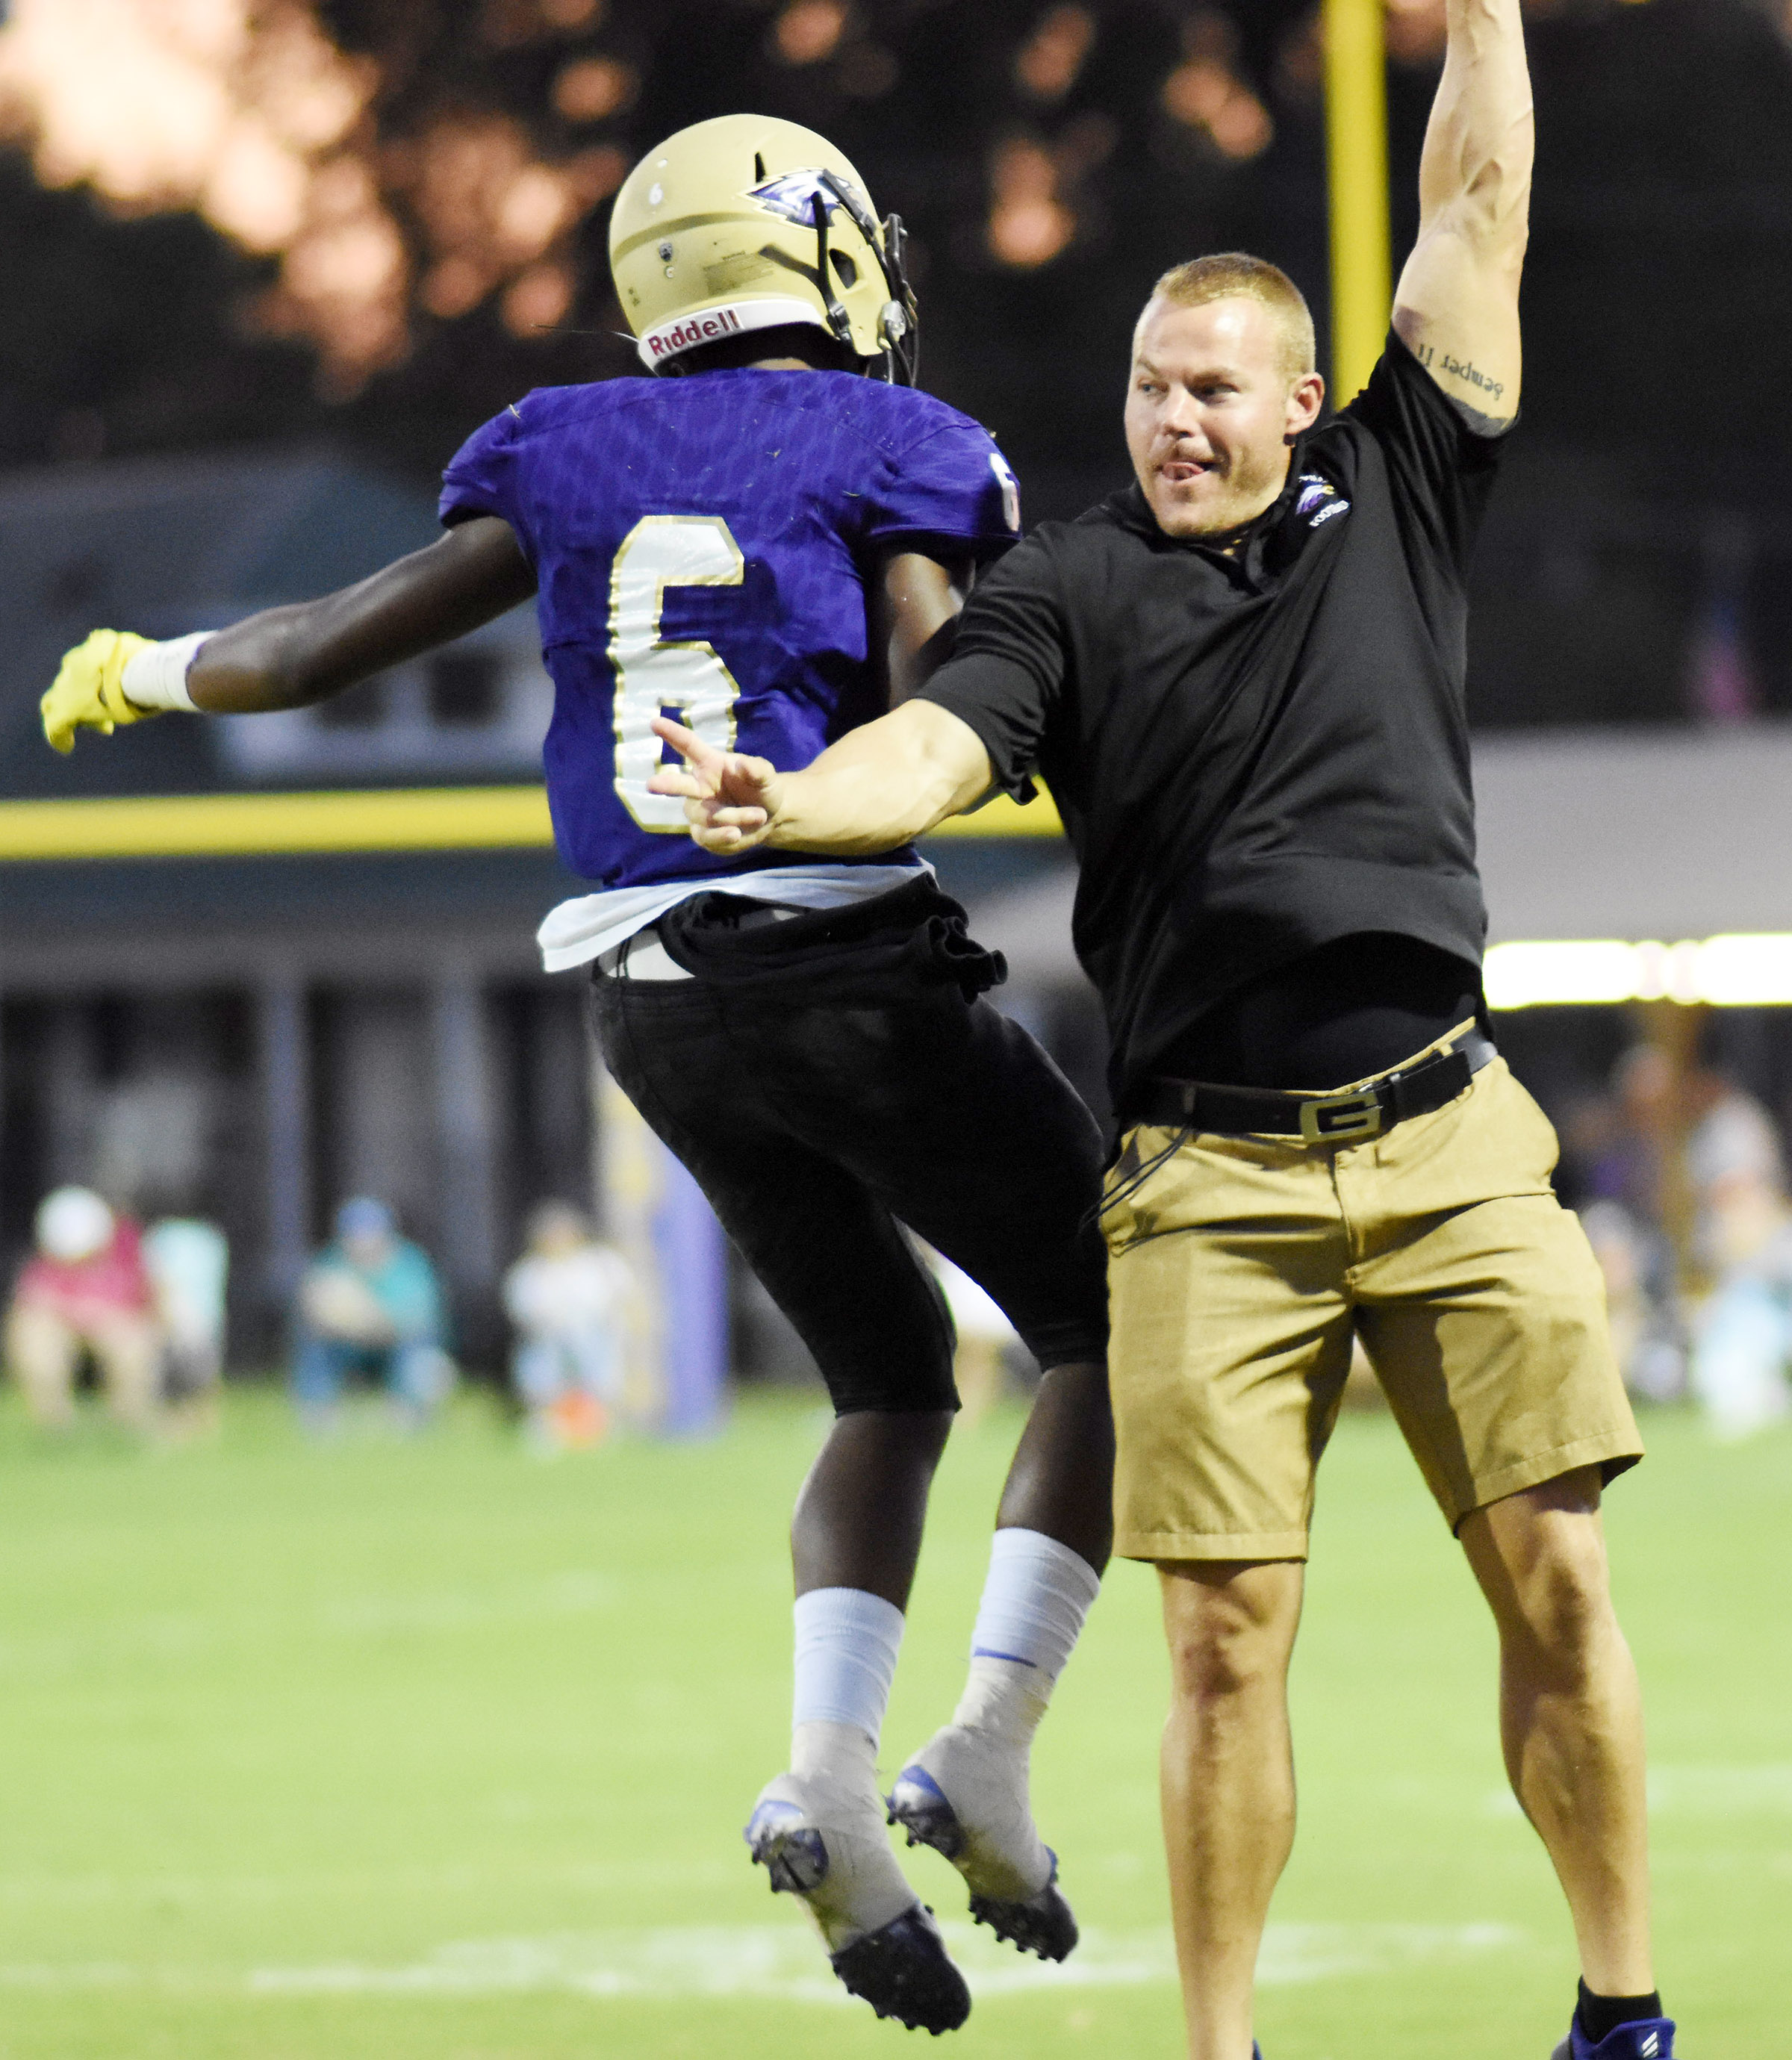 CHS junior Malachi Corley celebrates a touchdown with assistant coach Robbie Gribbins.